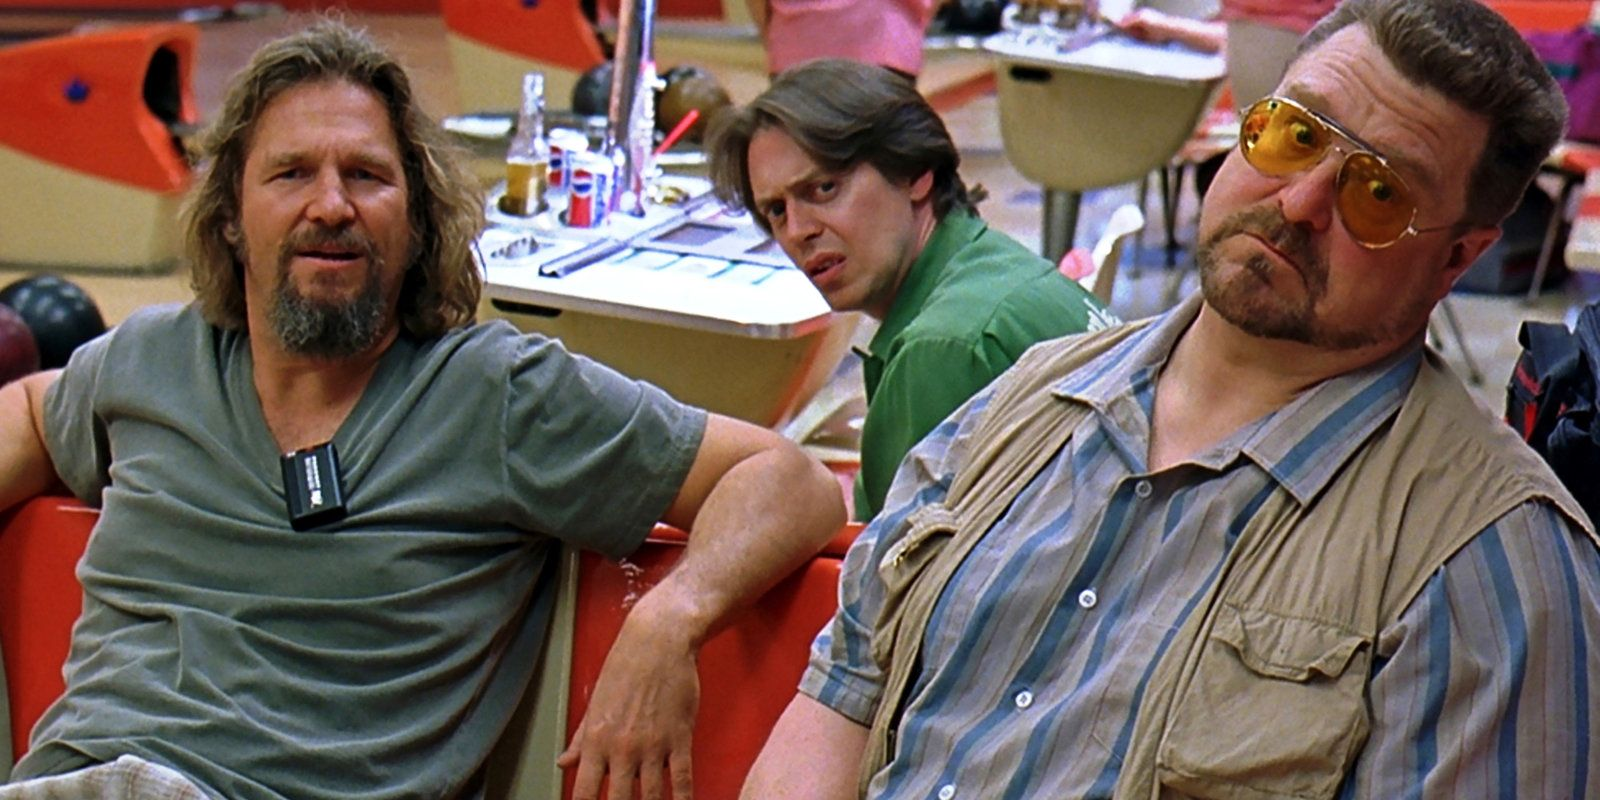 Steve Buscemi Didn't Want To Play Donnie In 'The Big Lebowski' Because He Got Bullied So Much